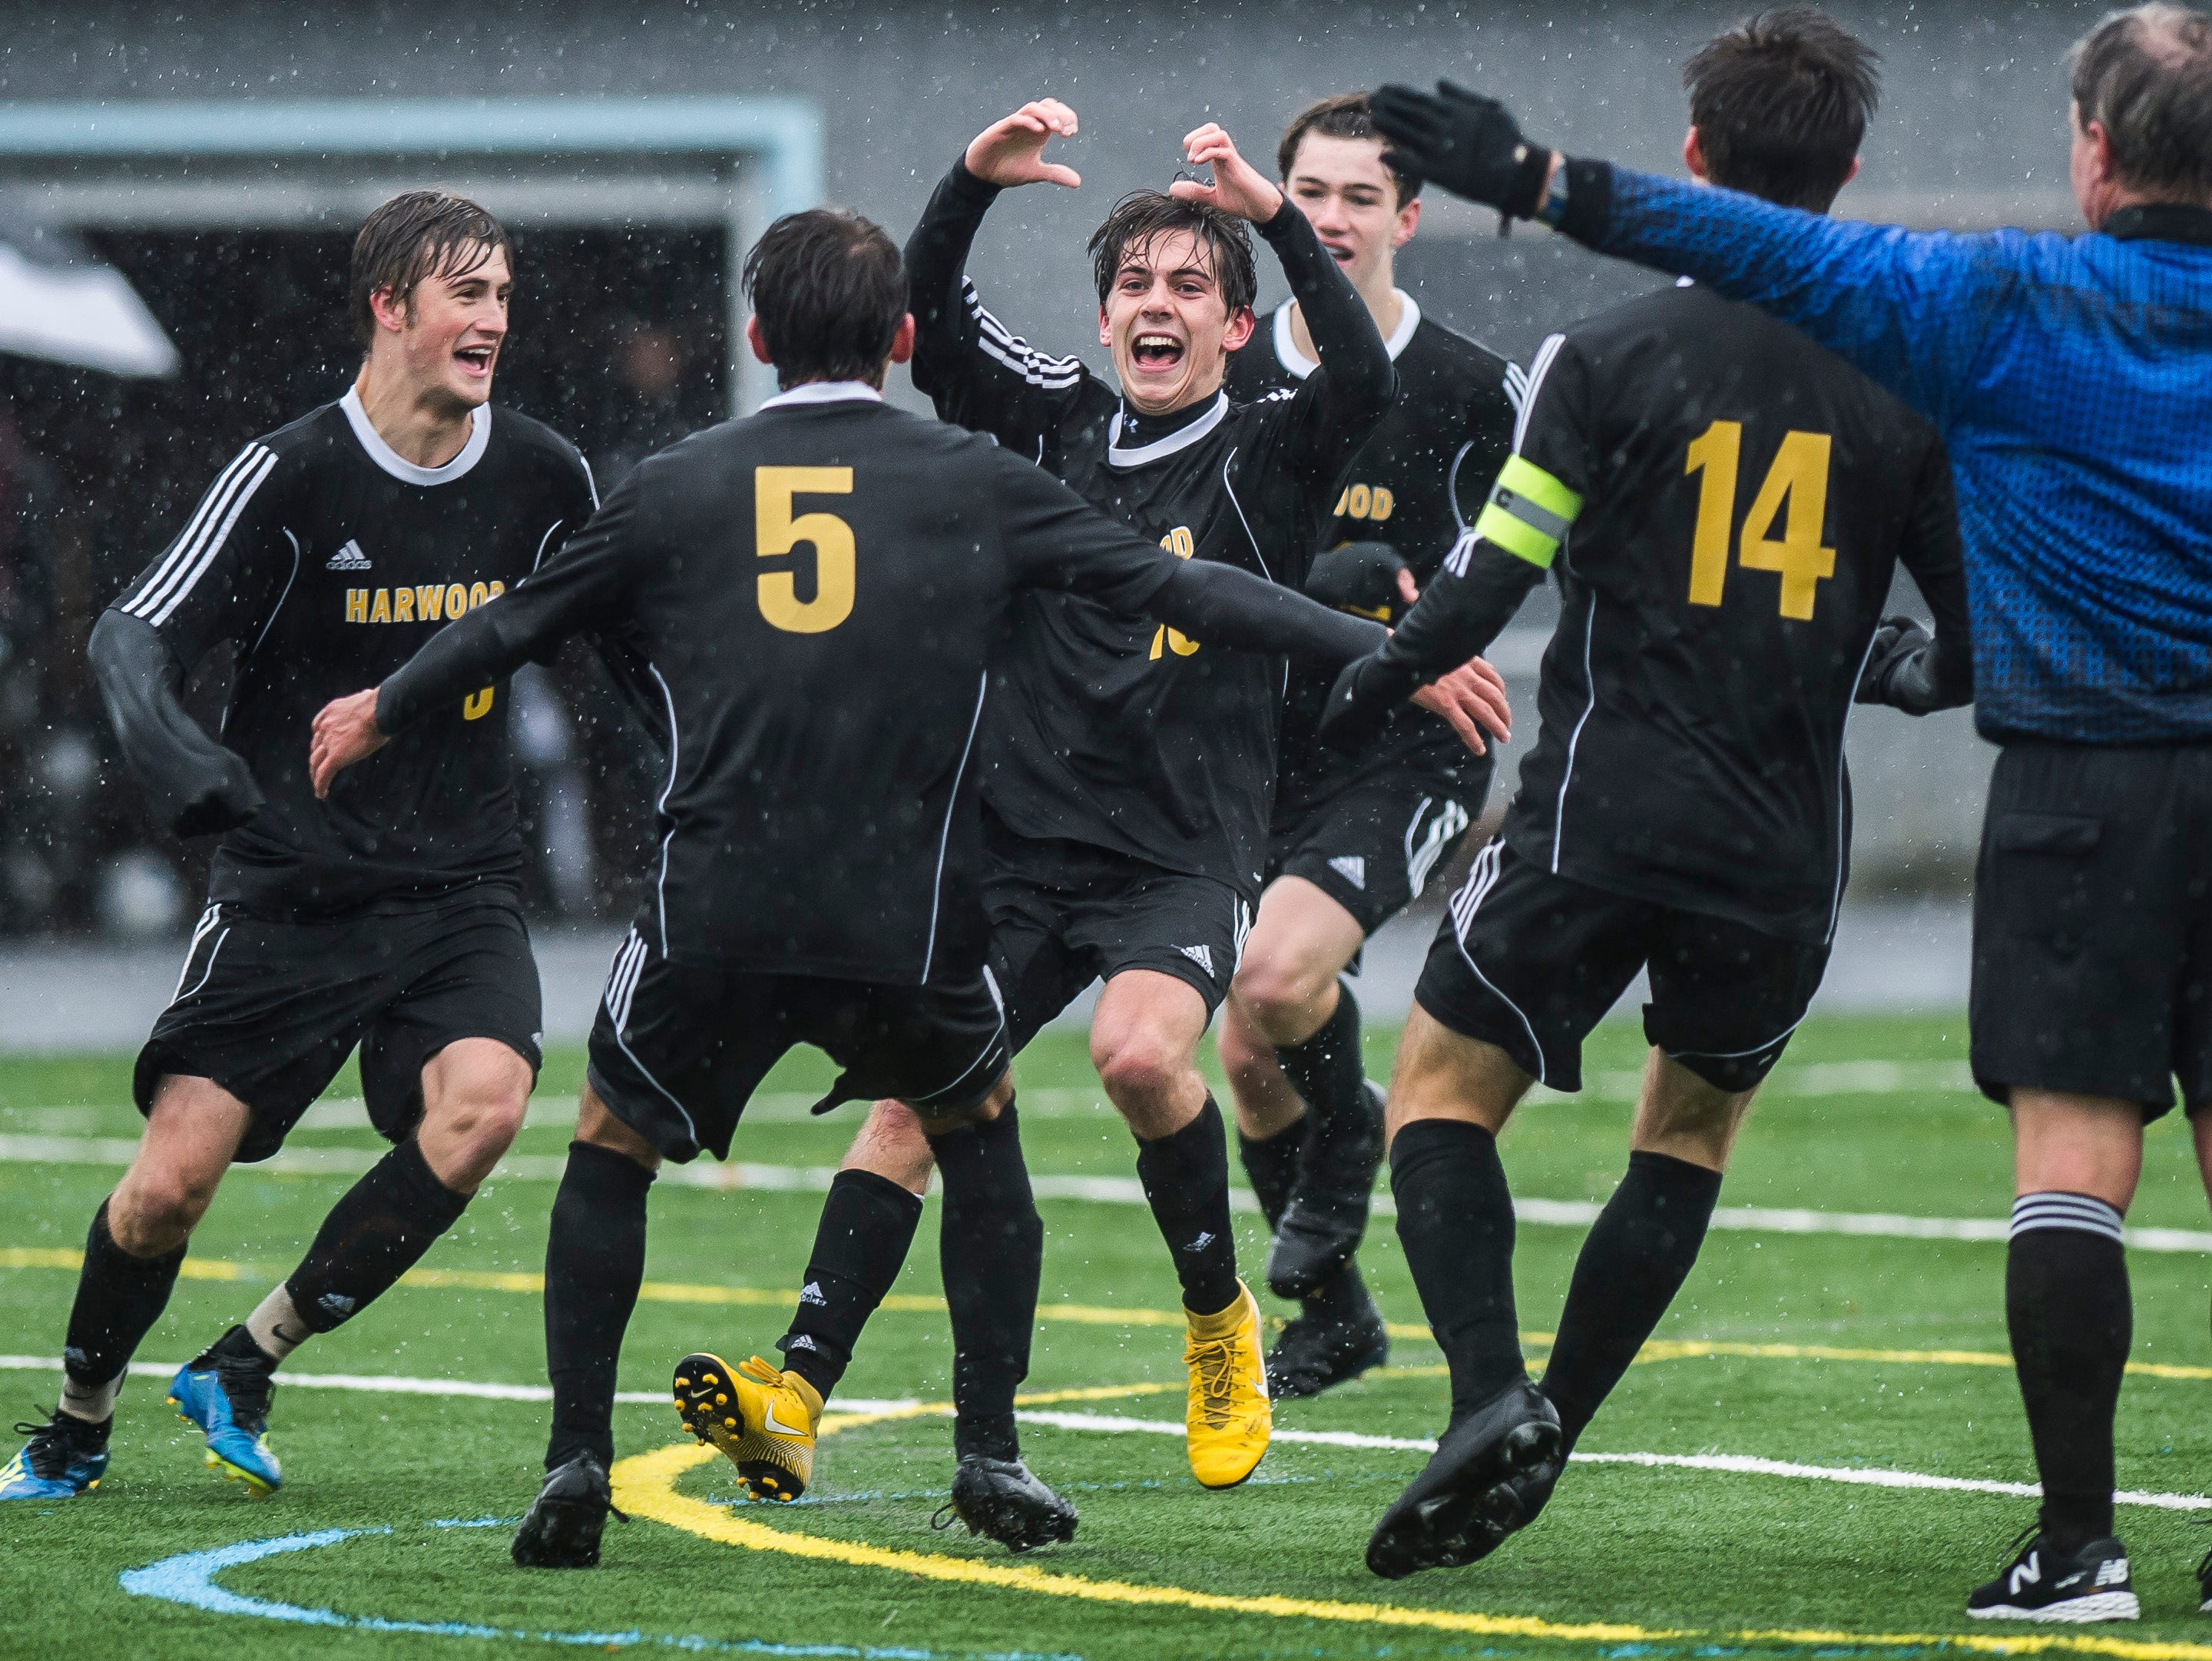 Harwood #10 Charlie Zschau celebrates after scoring during their Div. 2 Vermont State high school boy's soccer championship game against Woodstock at South Burlington High School on Saturday, Nov. 3, 2018. Hardwood Union won, 3-0.